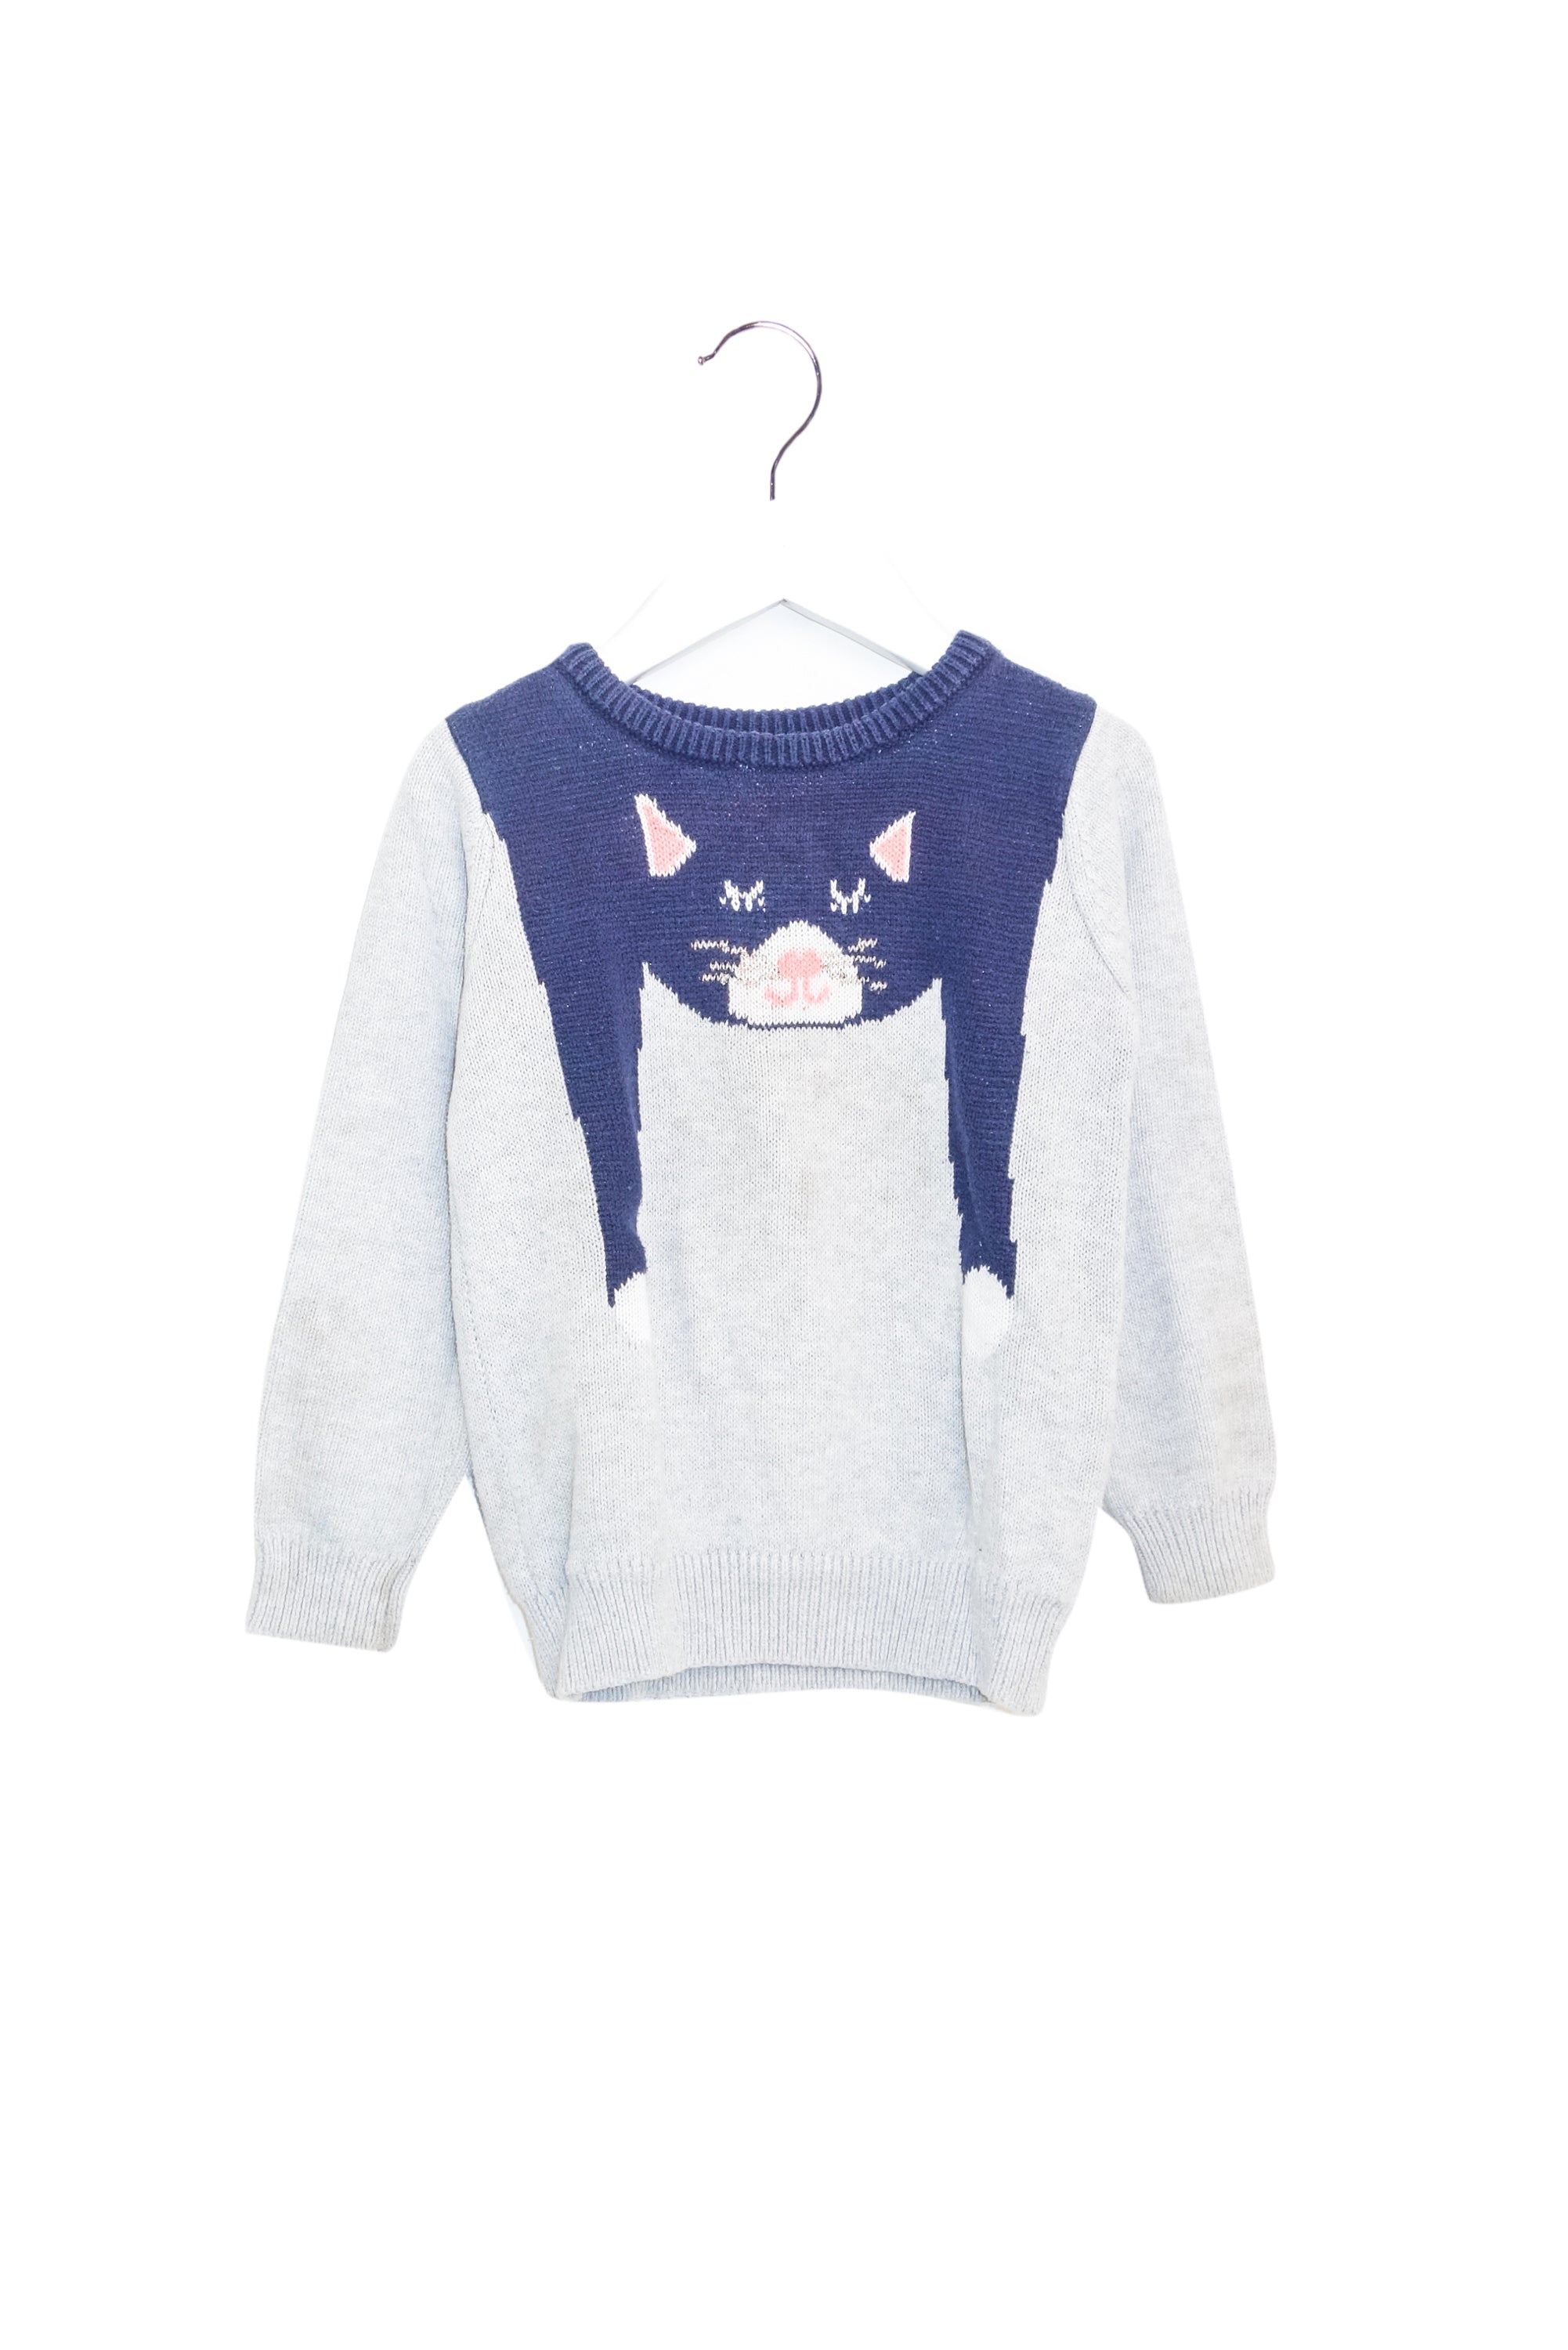 10014296 Seed Kids ~Sweater  4T at Retykle